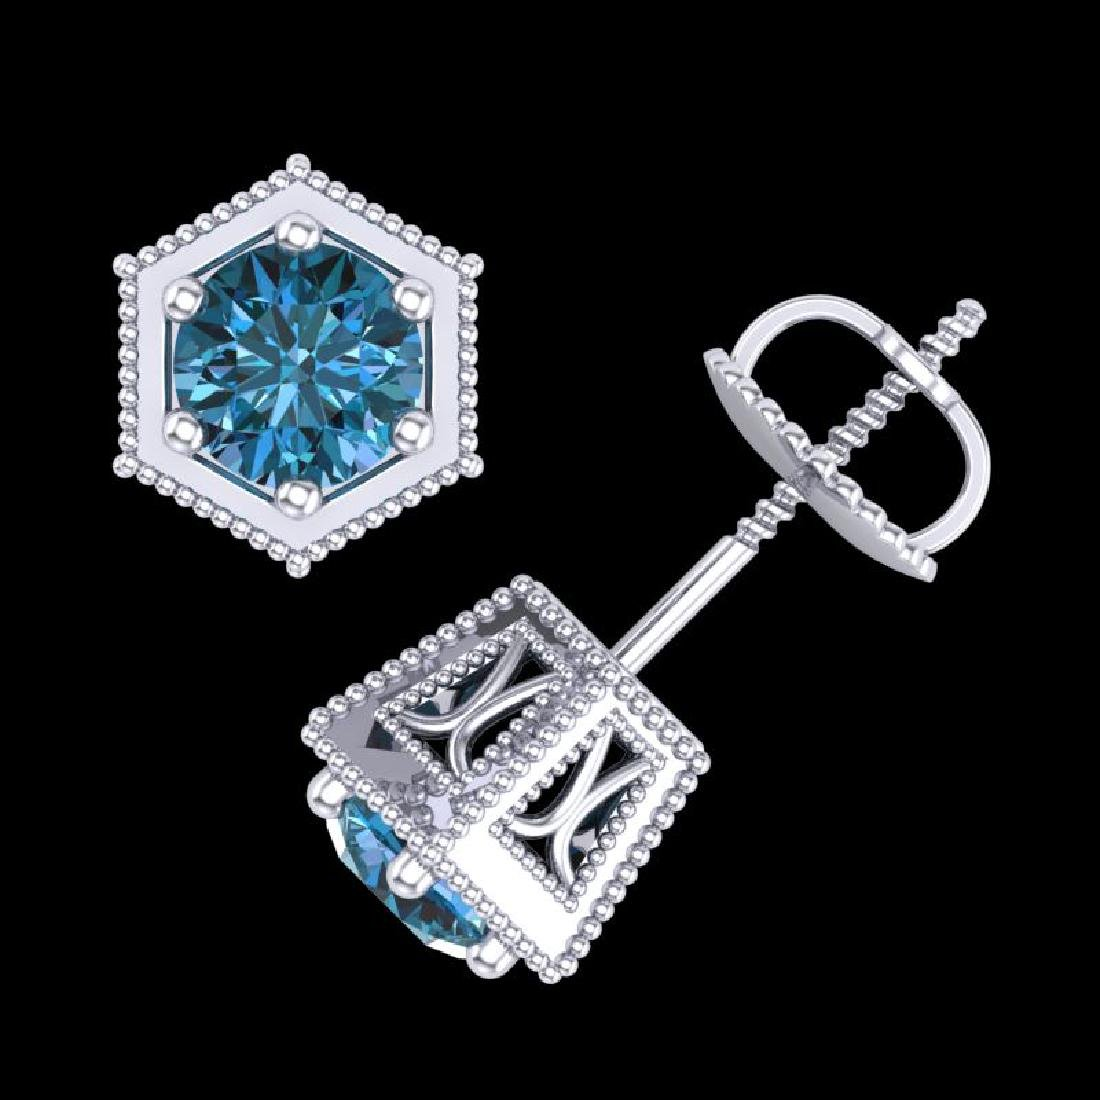 1.15 CTW Fancy Intense Blue Diamond Art Deco Stud - 3